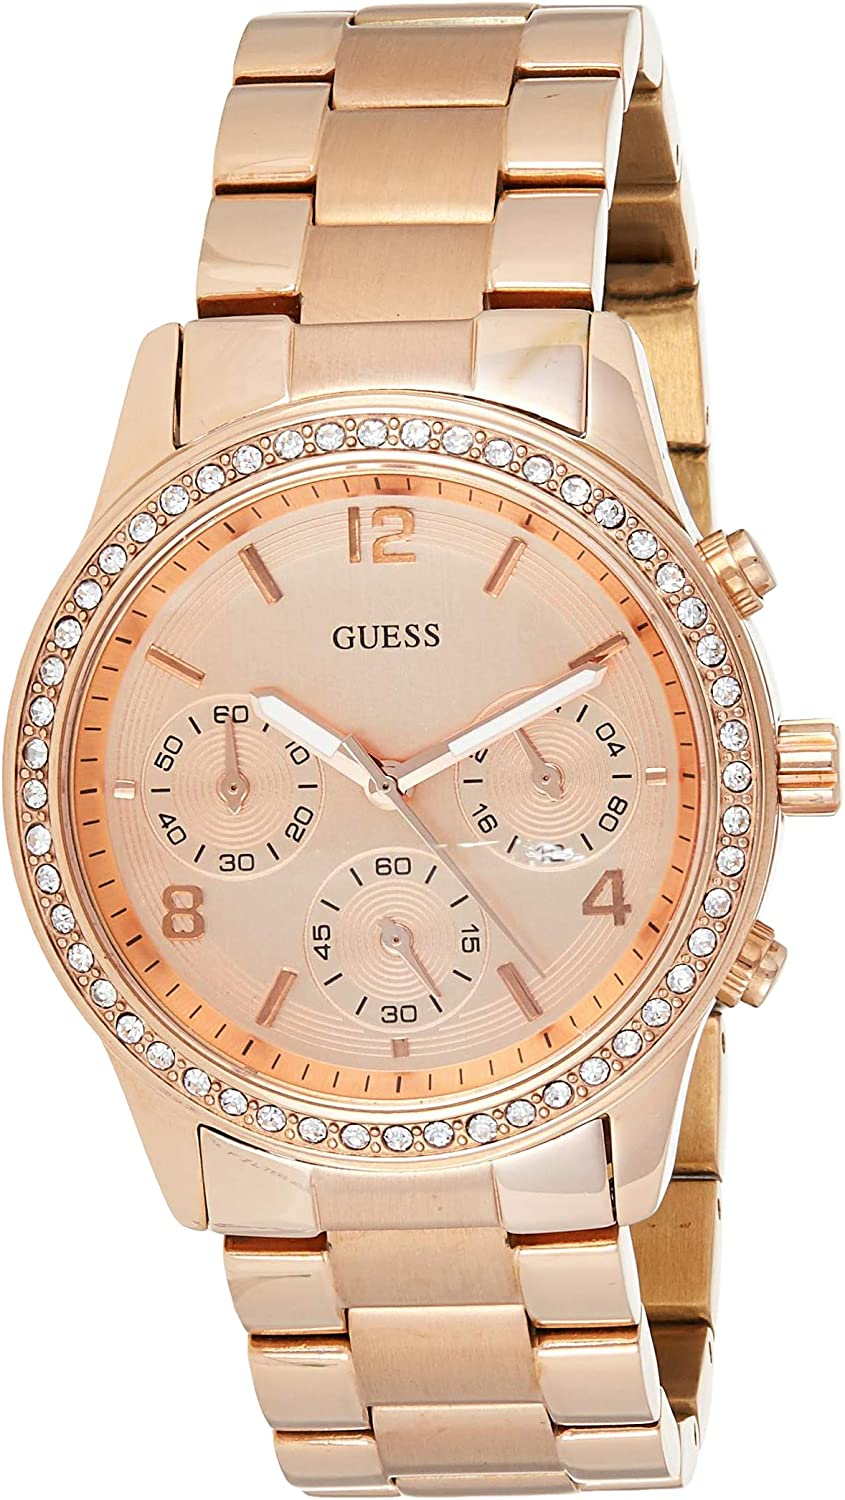 GUESS Reloj Guess mujer